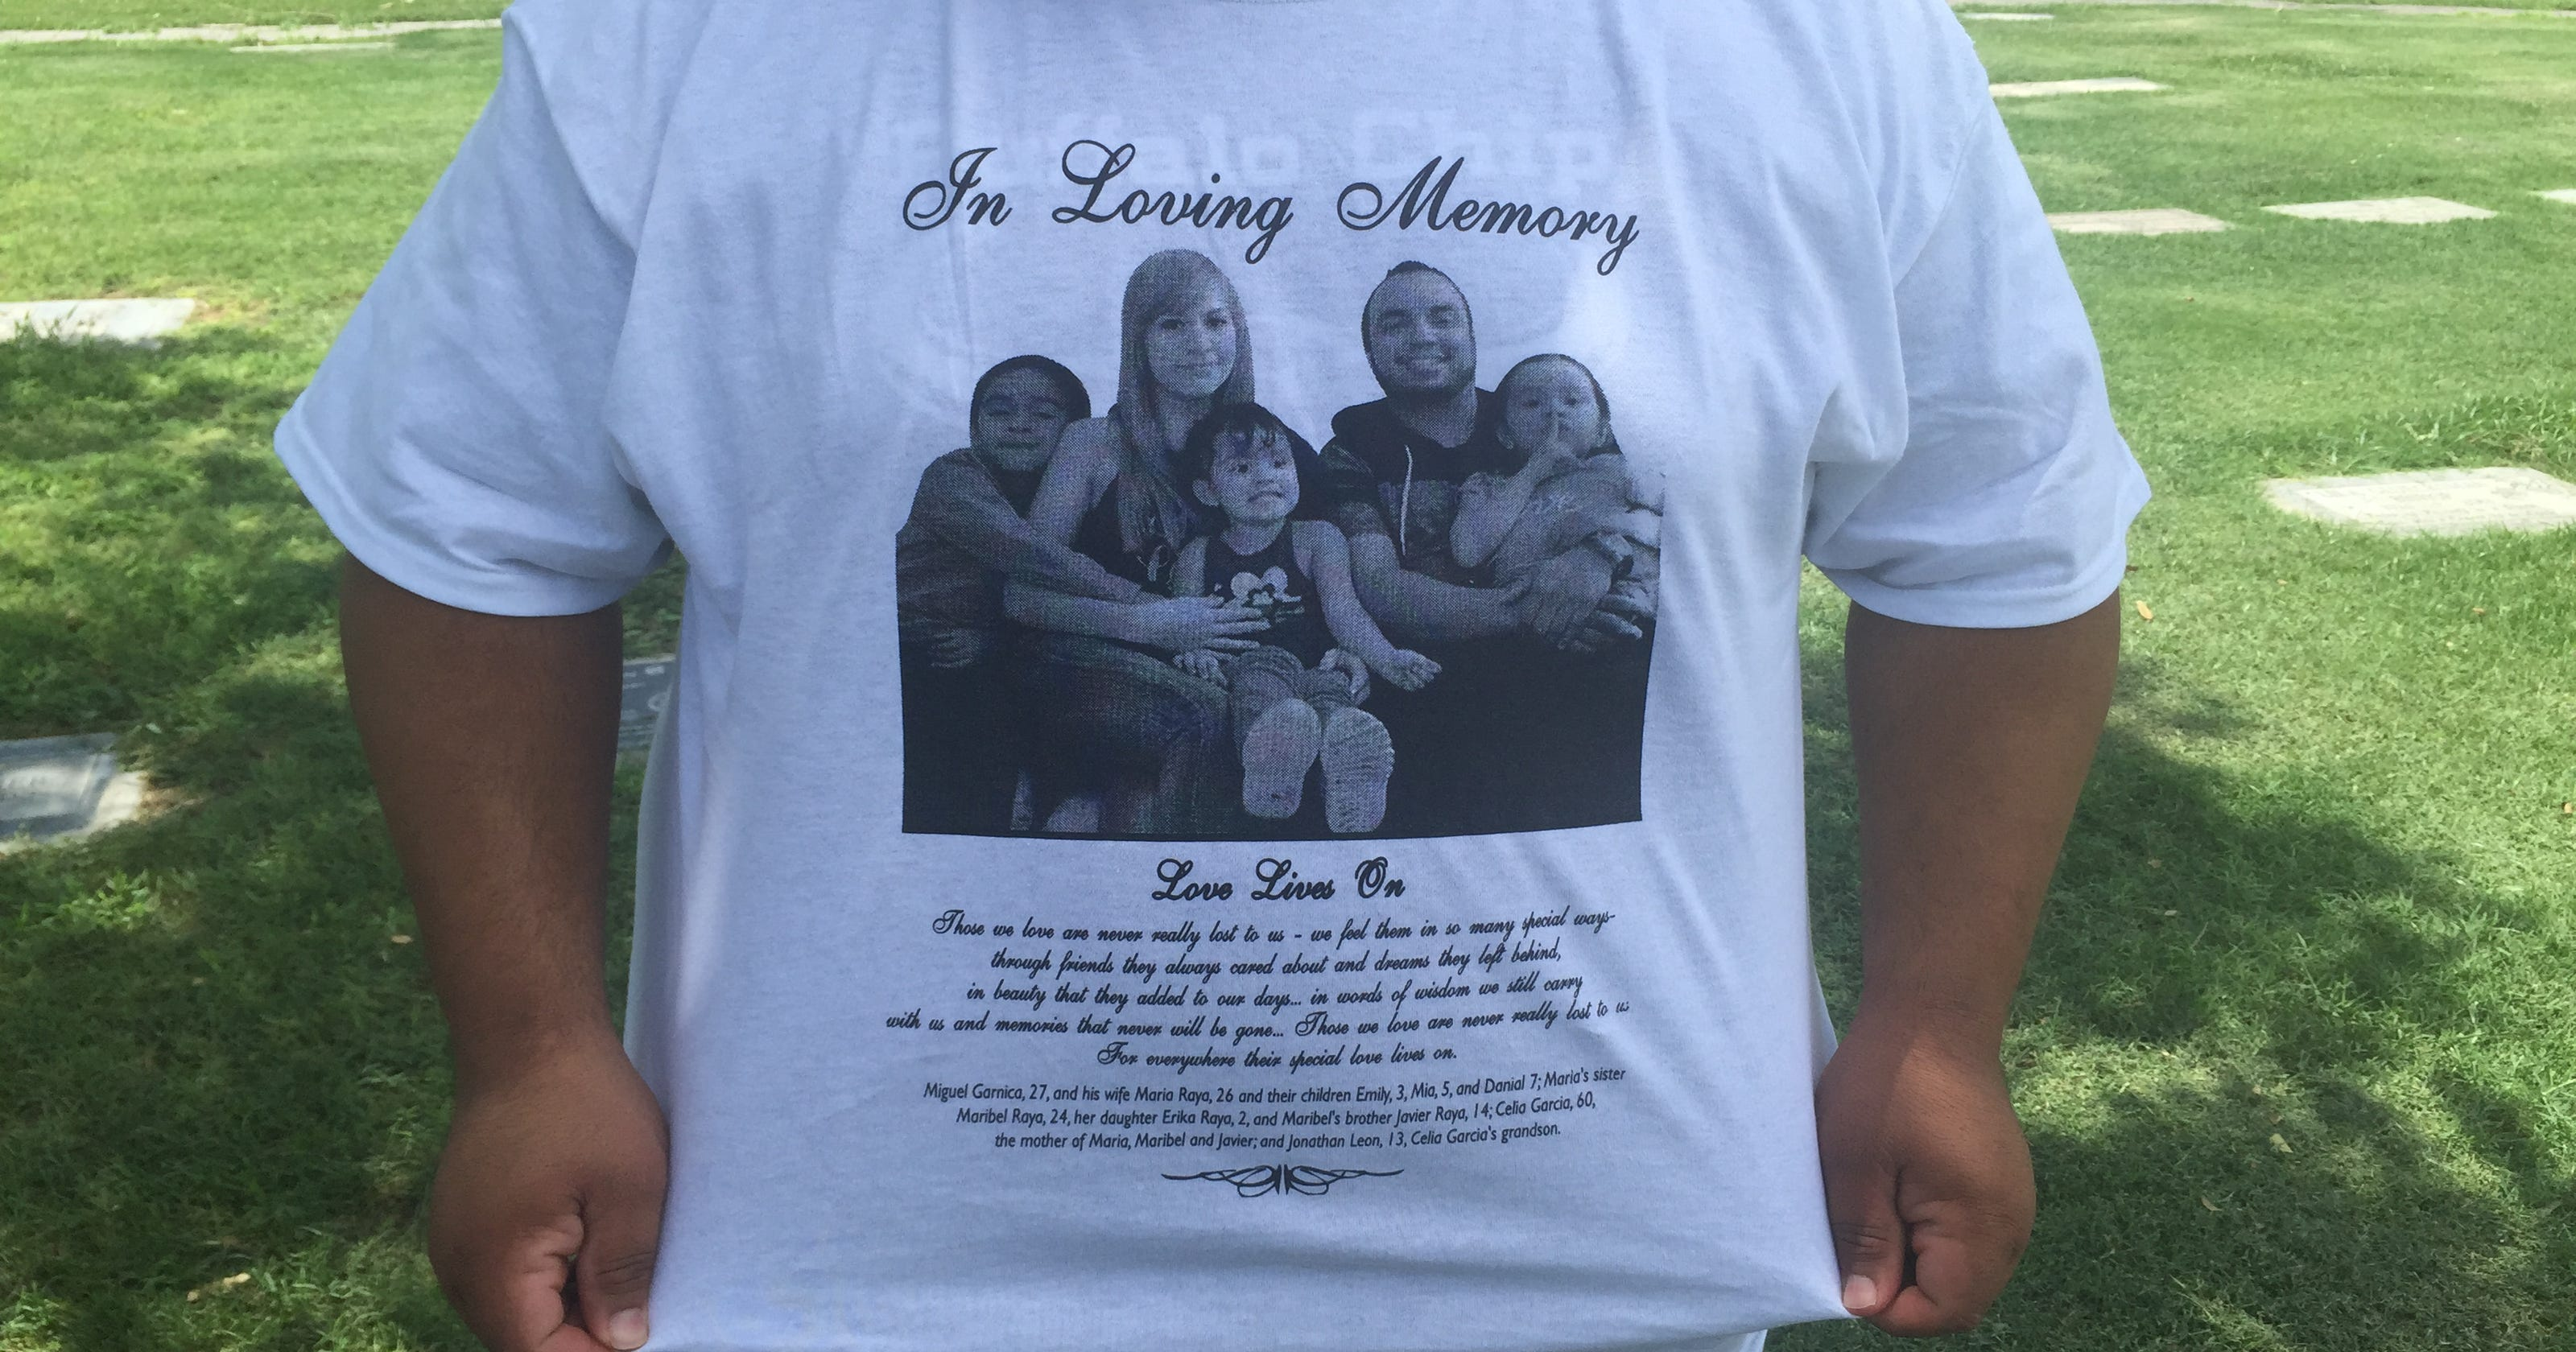 Love lives on' at funeral for 10 victims of Payson-area